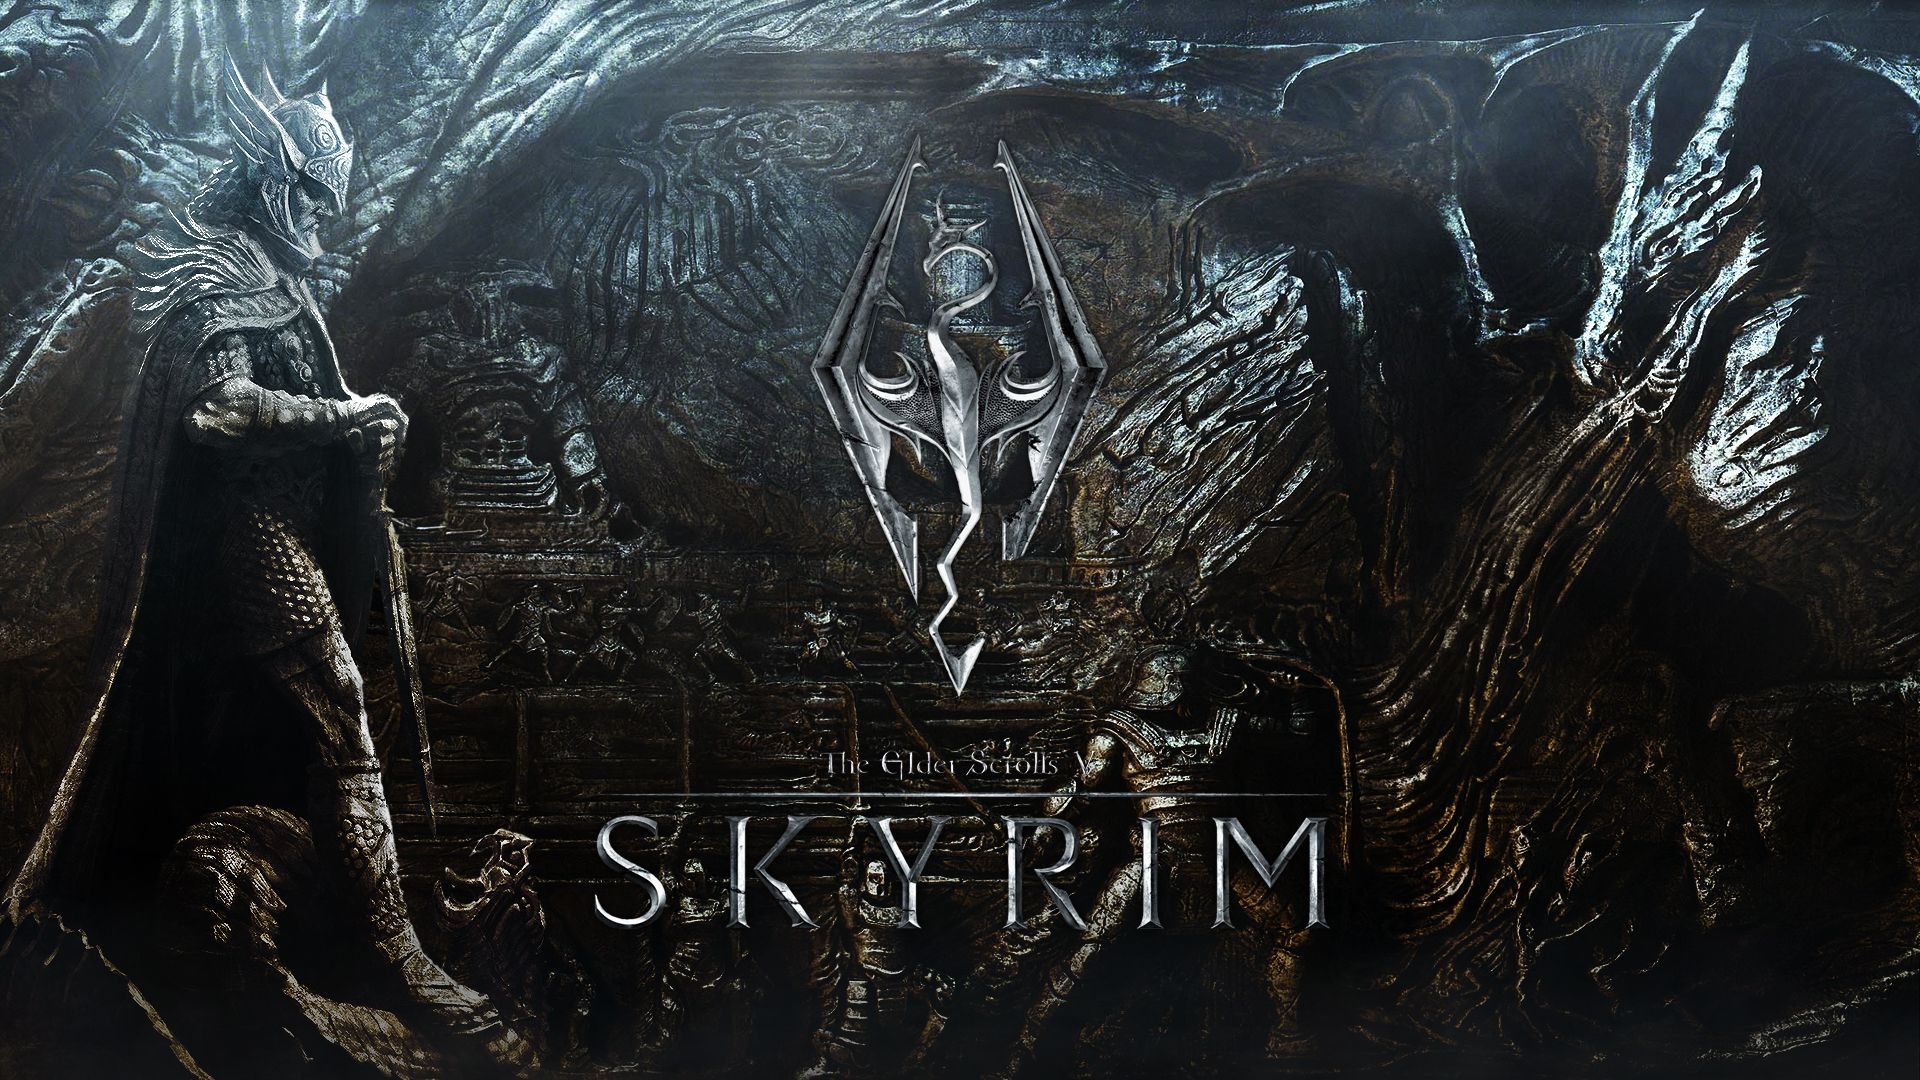 Skyrim Wallpapers Wallpaper 1920x1080 Skyrim Wallpaper 41 Wallpapers Adorable Wallpapers